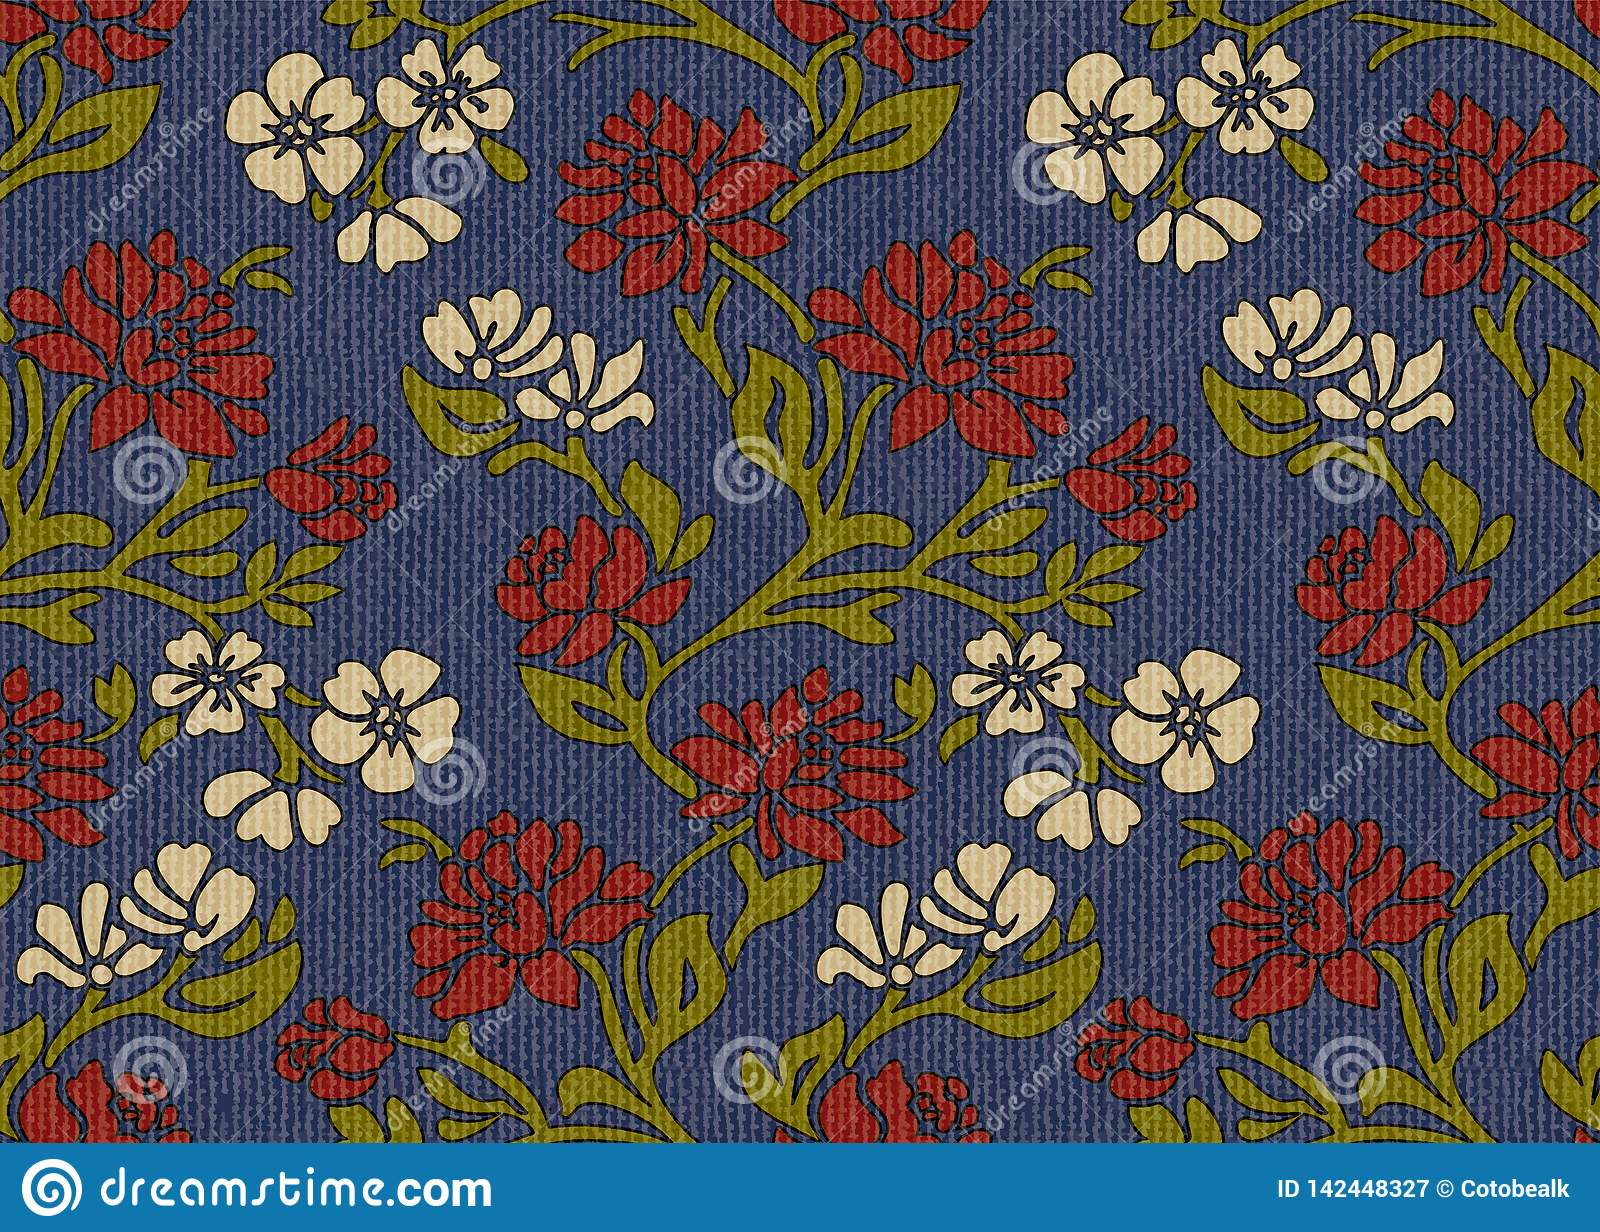 Vintage Floral Upholstery Fabric Seamless Pattern Stock Vector